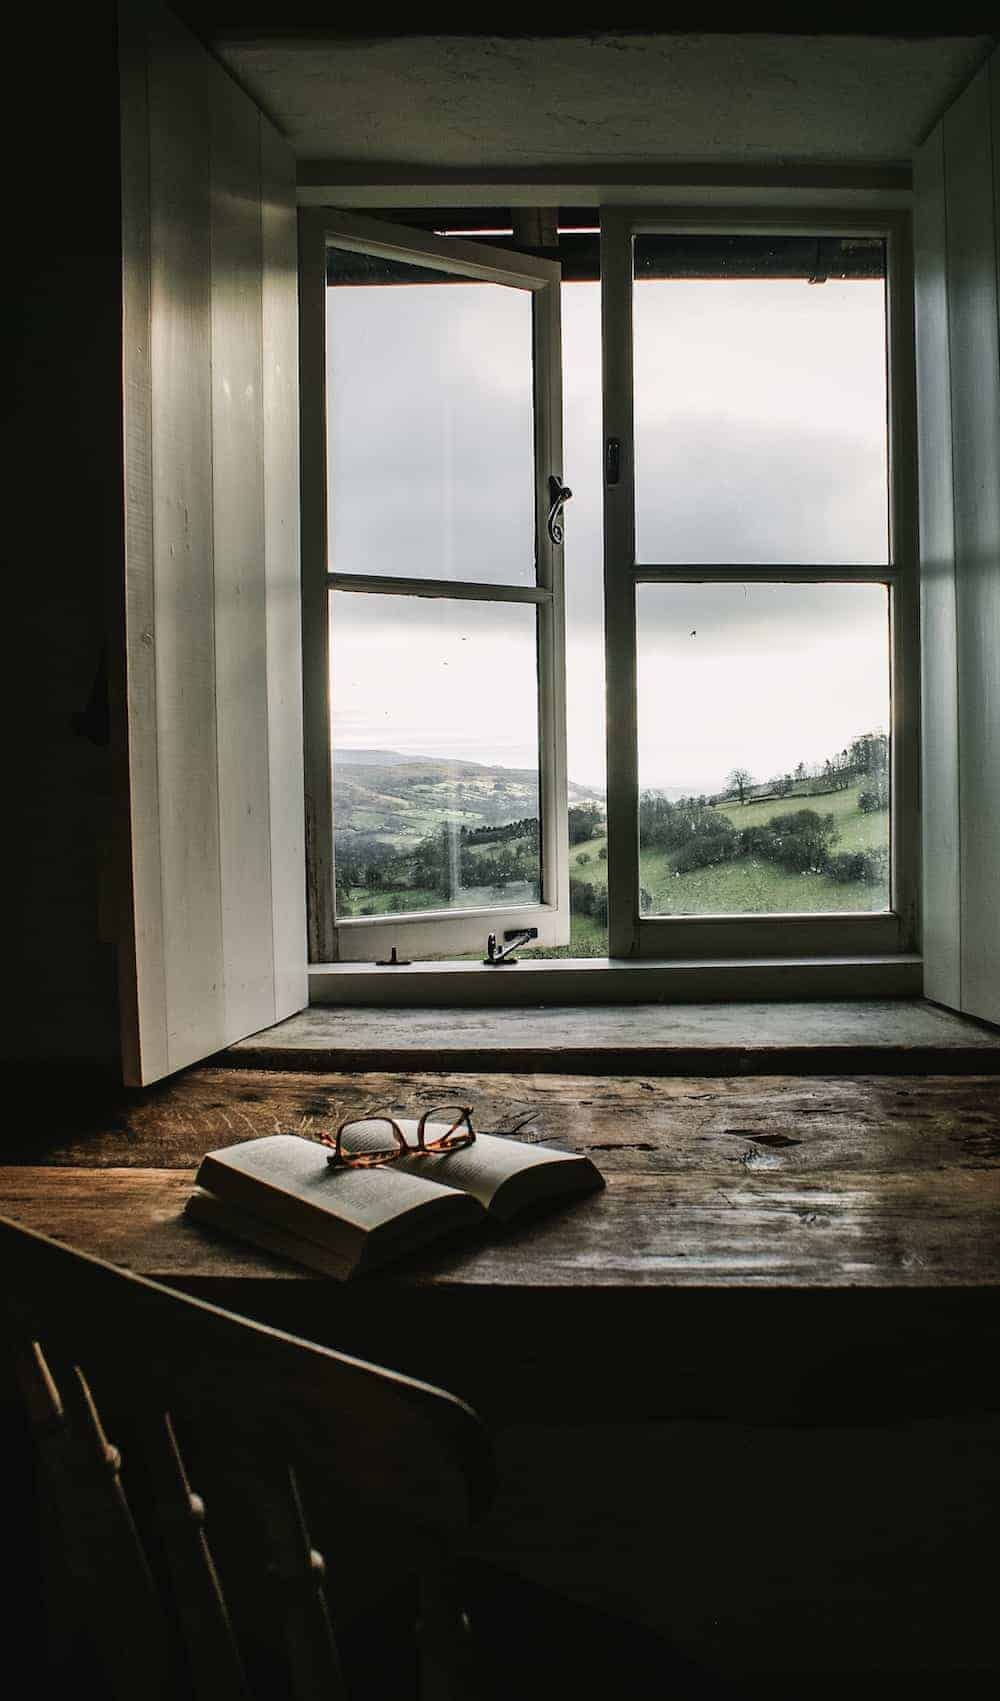 loved our stay at patrishow farm in the brecon beacons - a simple, contemporary rustic welsh cottage with deep set windows with shutters, thick stone walls, slate floors, old wooden doors and windows and spiral stone staircases. Click through to see more beautiful images of the cottage and the area